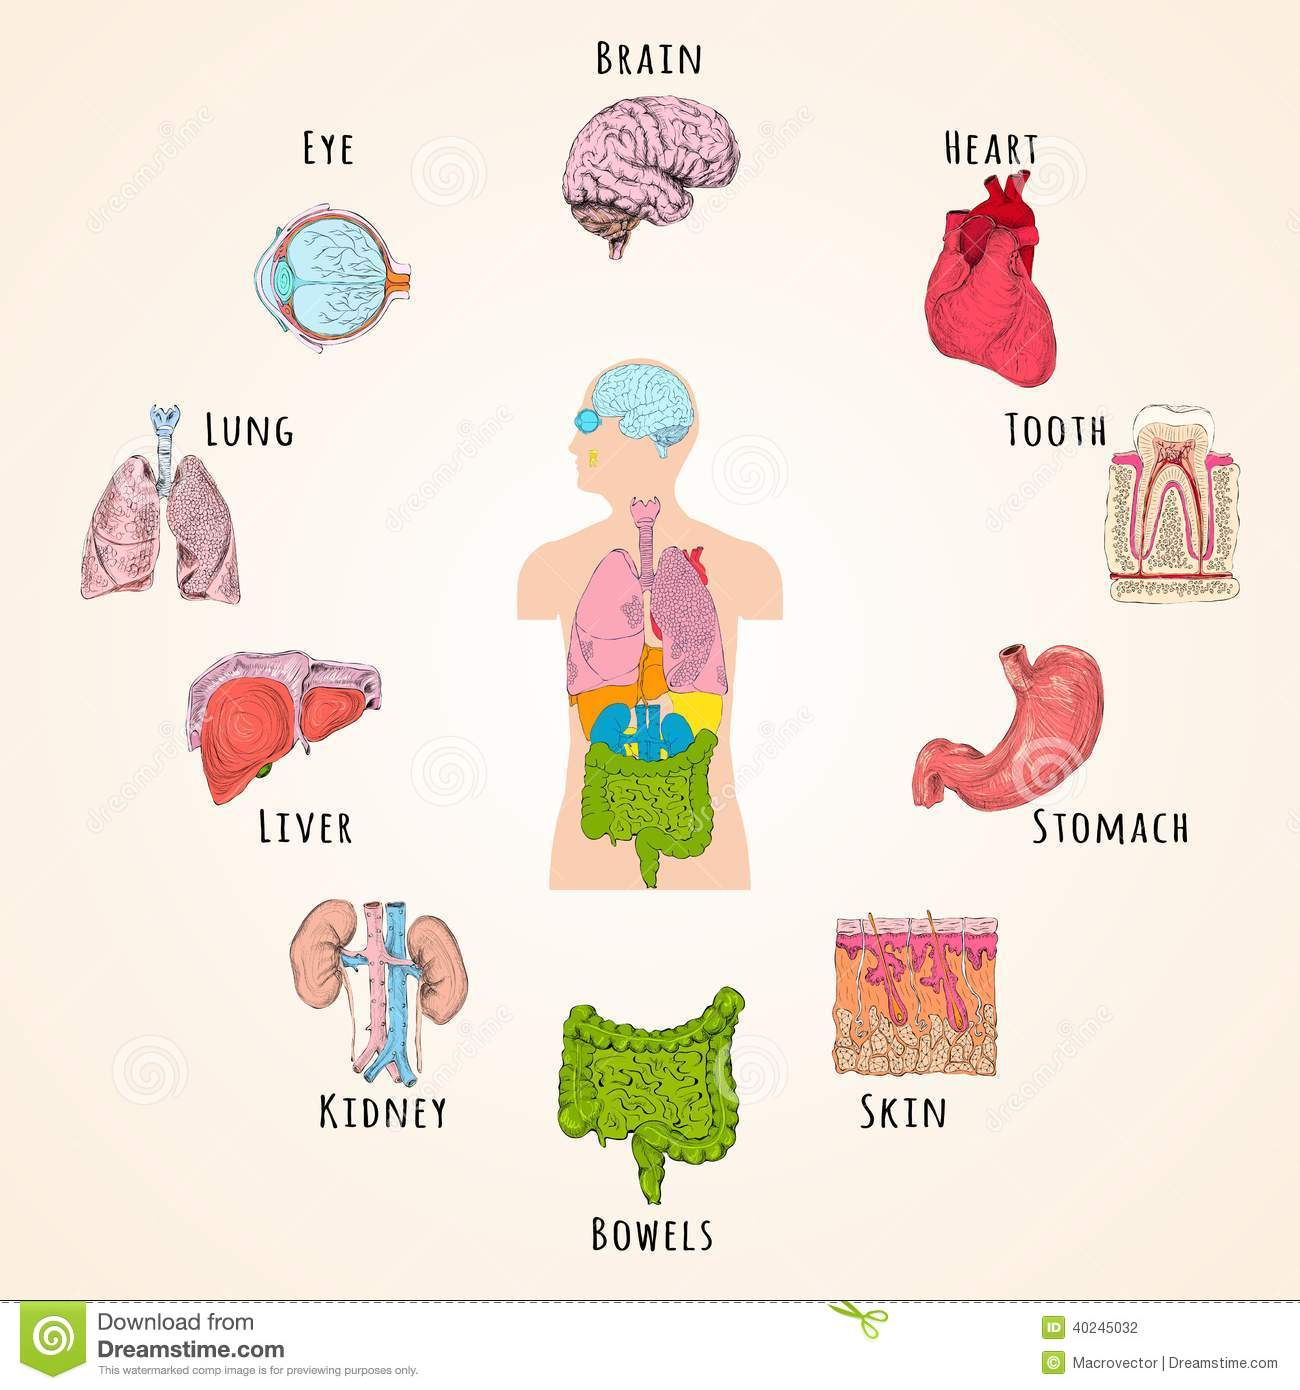 human anatomy icons stock illustrations 9 245 human anatomy icons stock illustrations vectors clipart dreamstime dreamstime com